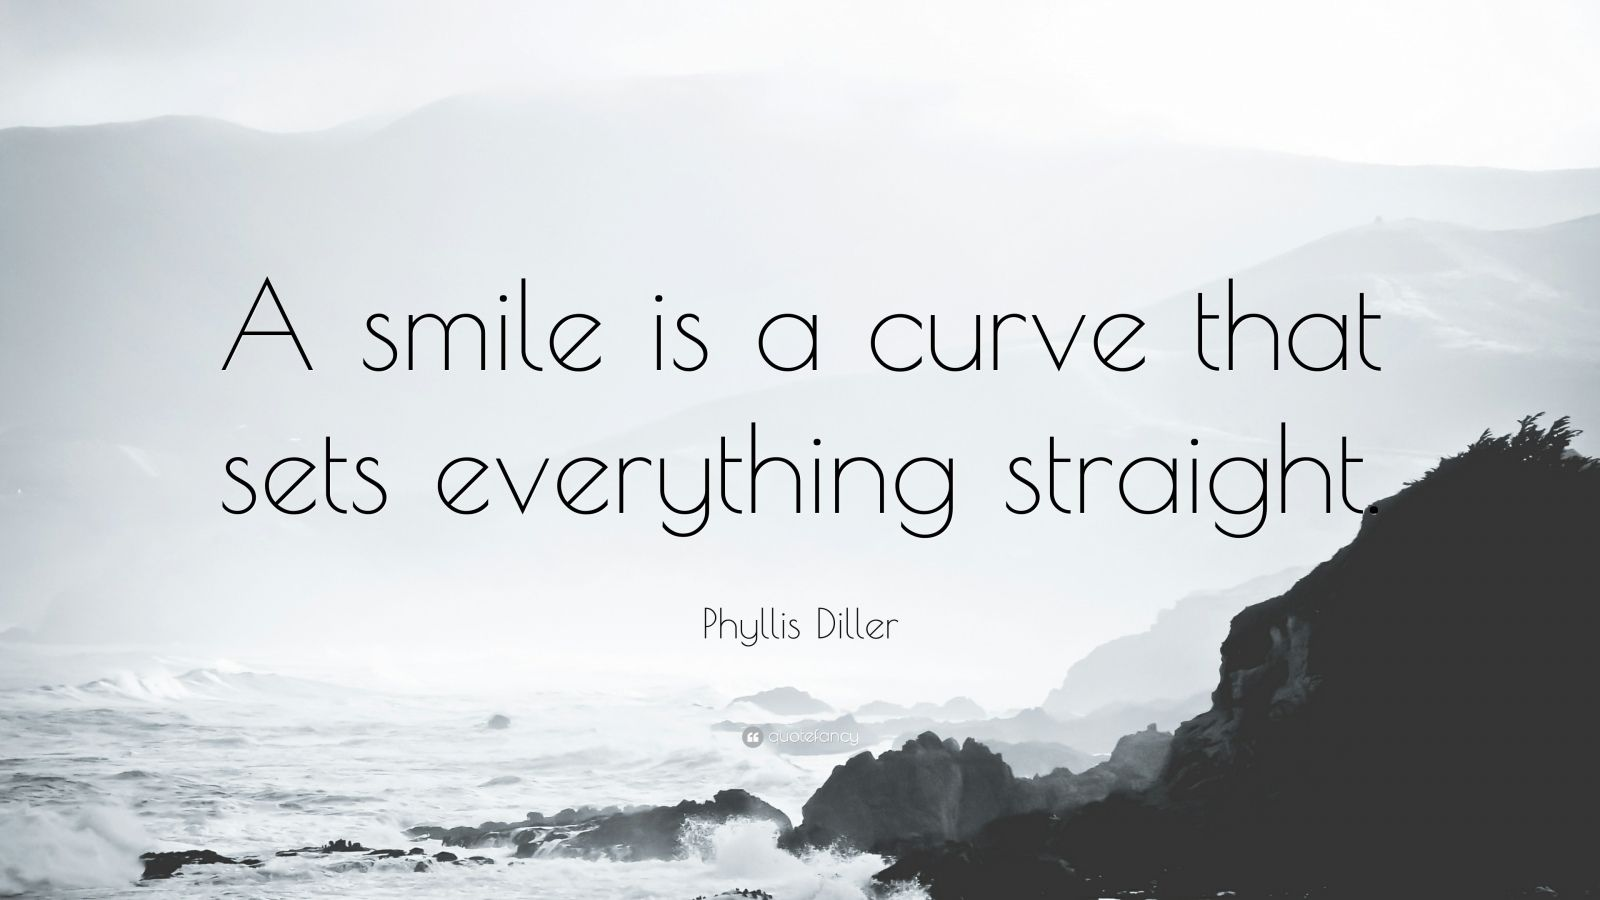 Smile quotes a smile is a curve that sets everything straight